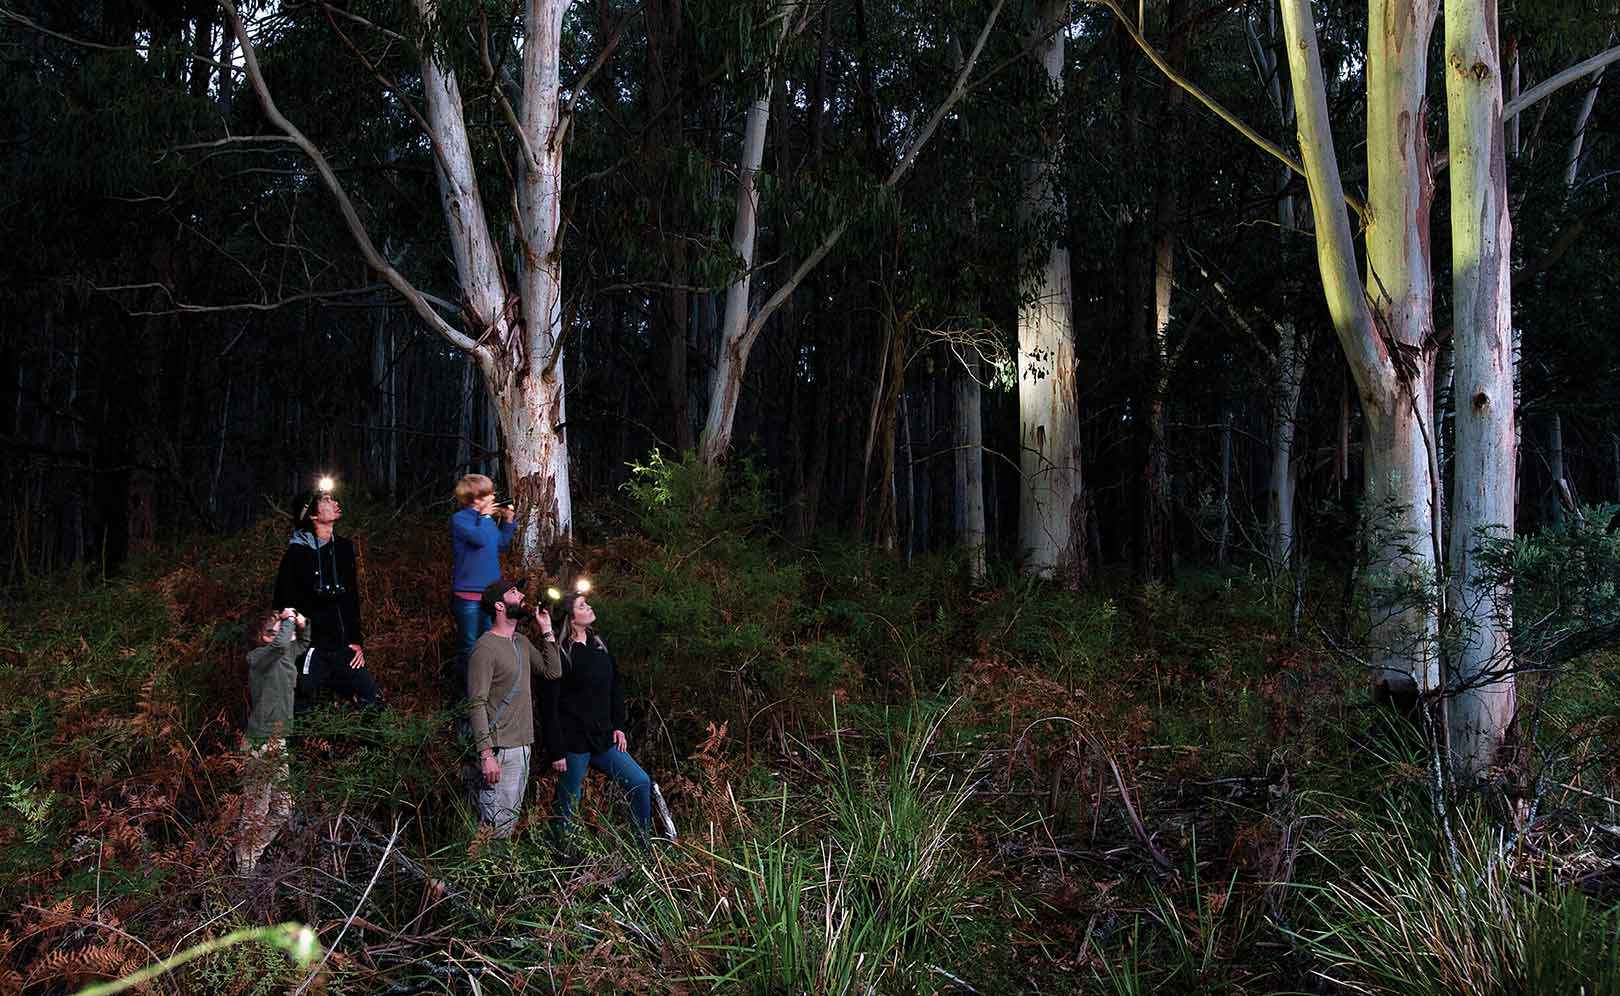 From left, Ari, Ziggy and Manu Scheltema, Brad Blake and Lindsey Dobeson spotlighting for greater gliders in the Wombat Forest near Trentham.